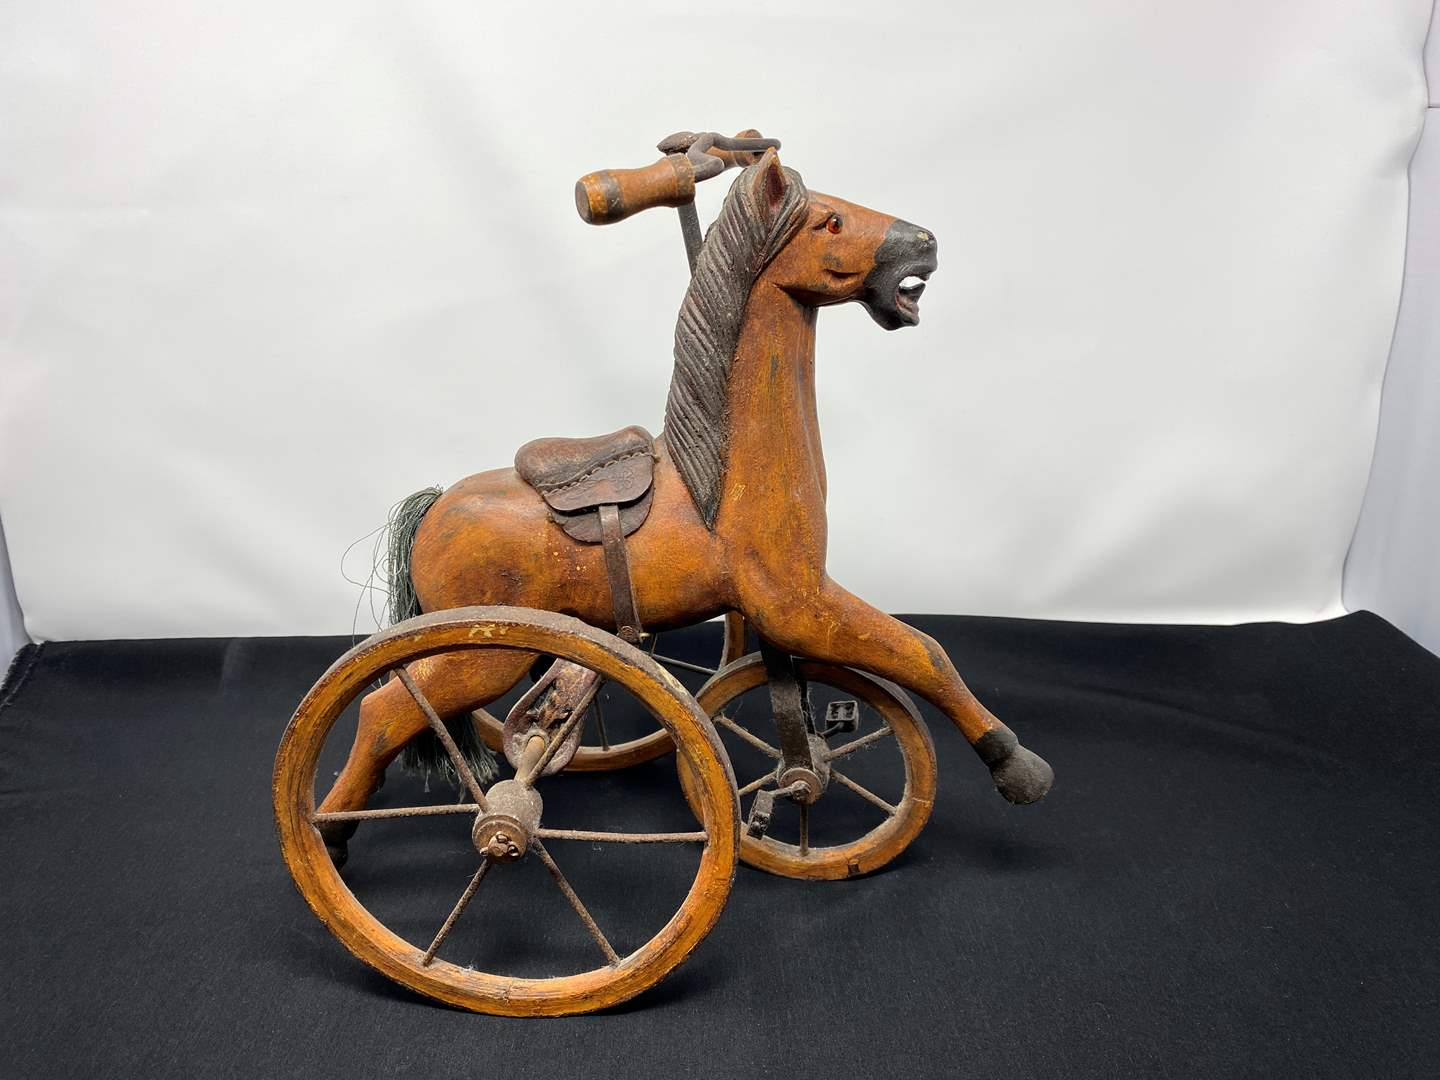 Lot # 100 - Antique Handmade Small Wood Horse Tricycle w/ Leather Seat (main image)